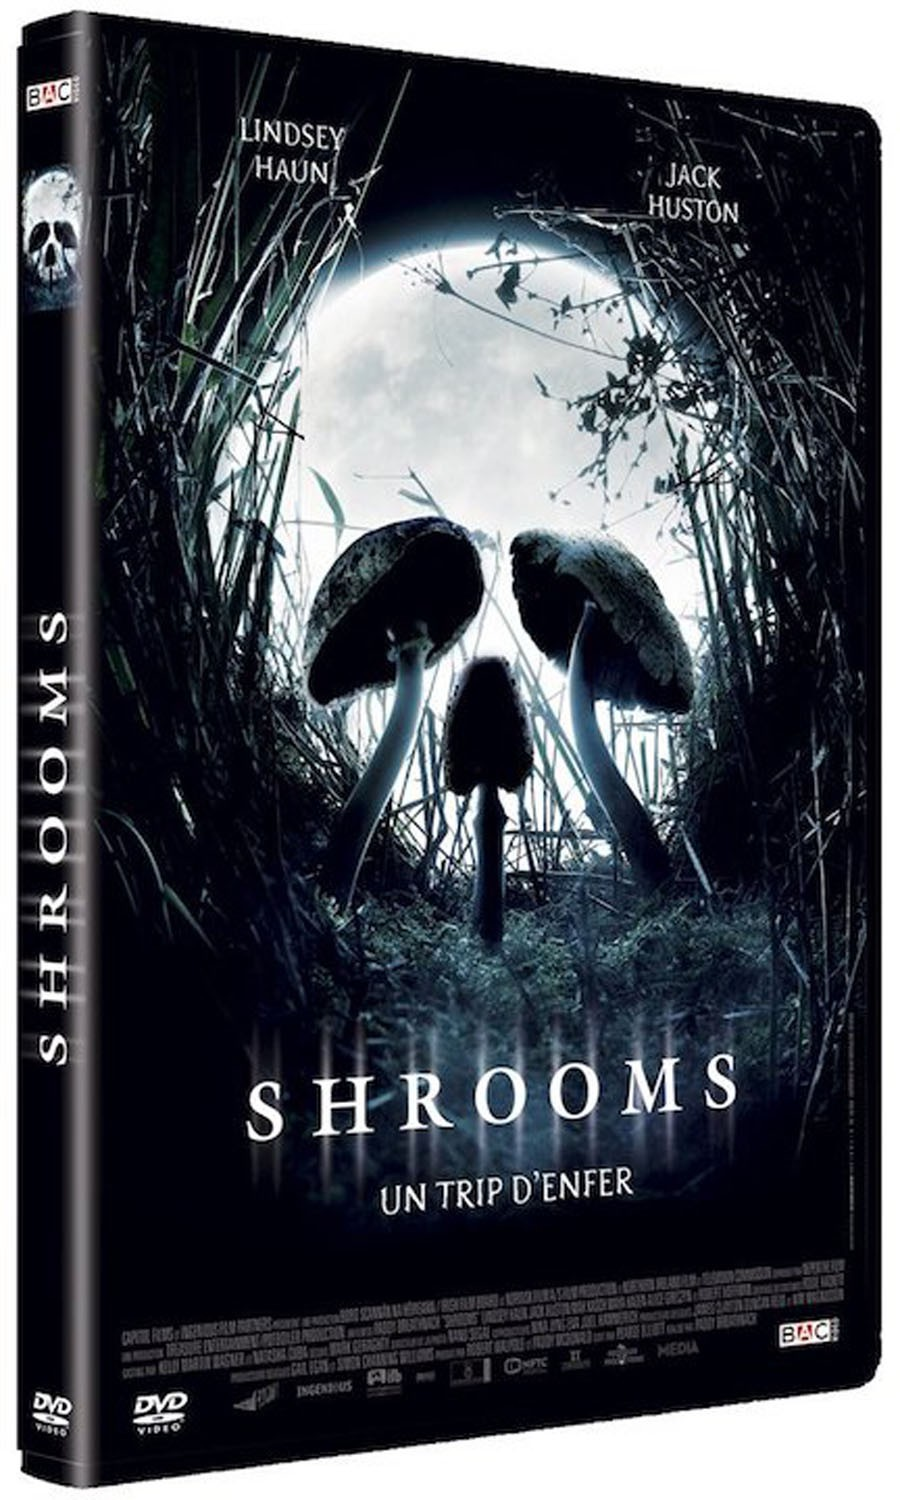 SHROOMS - UN TRIP D'ENFER